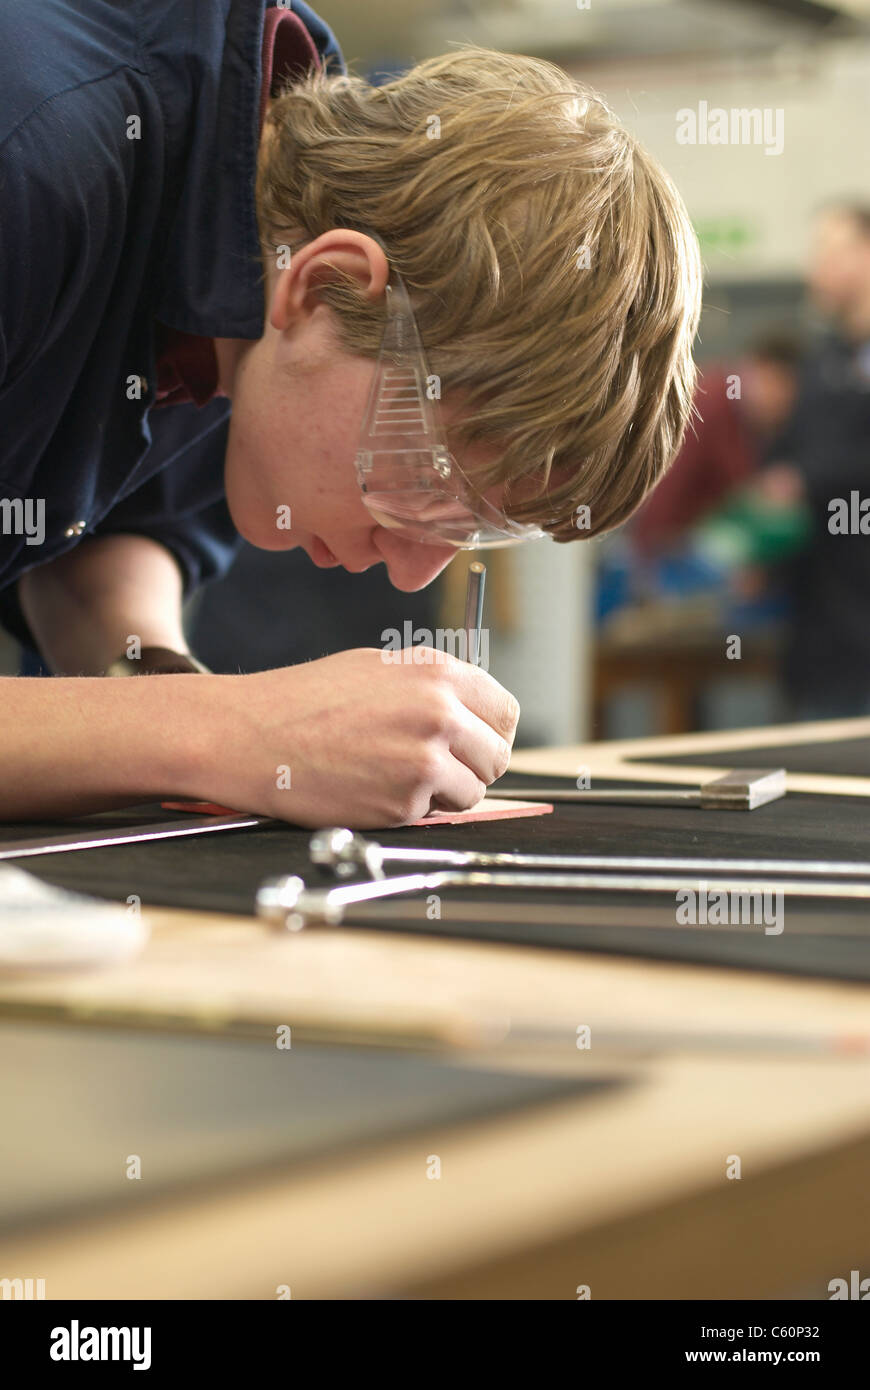 Worker tracing on countertop - Stock Image